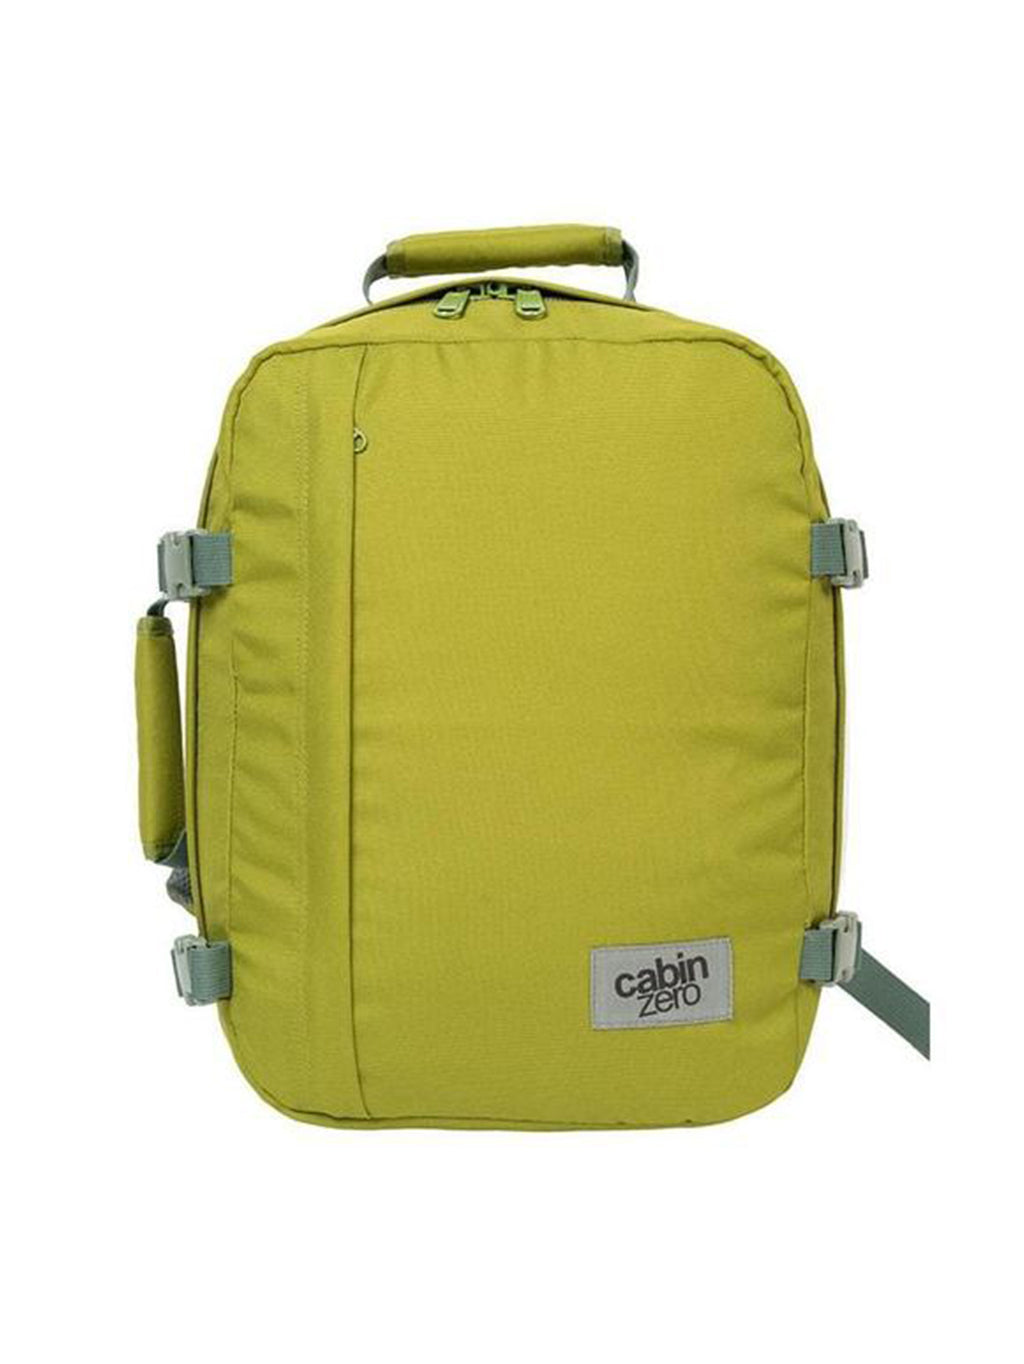 Cabinzero Classic 28L Ultra-Light Cabin Bag in Sagano Green Color